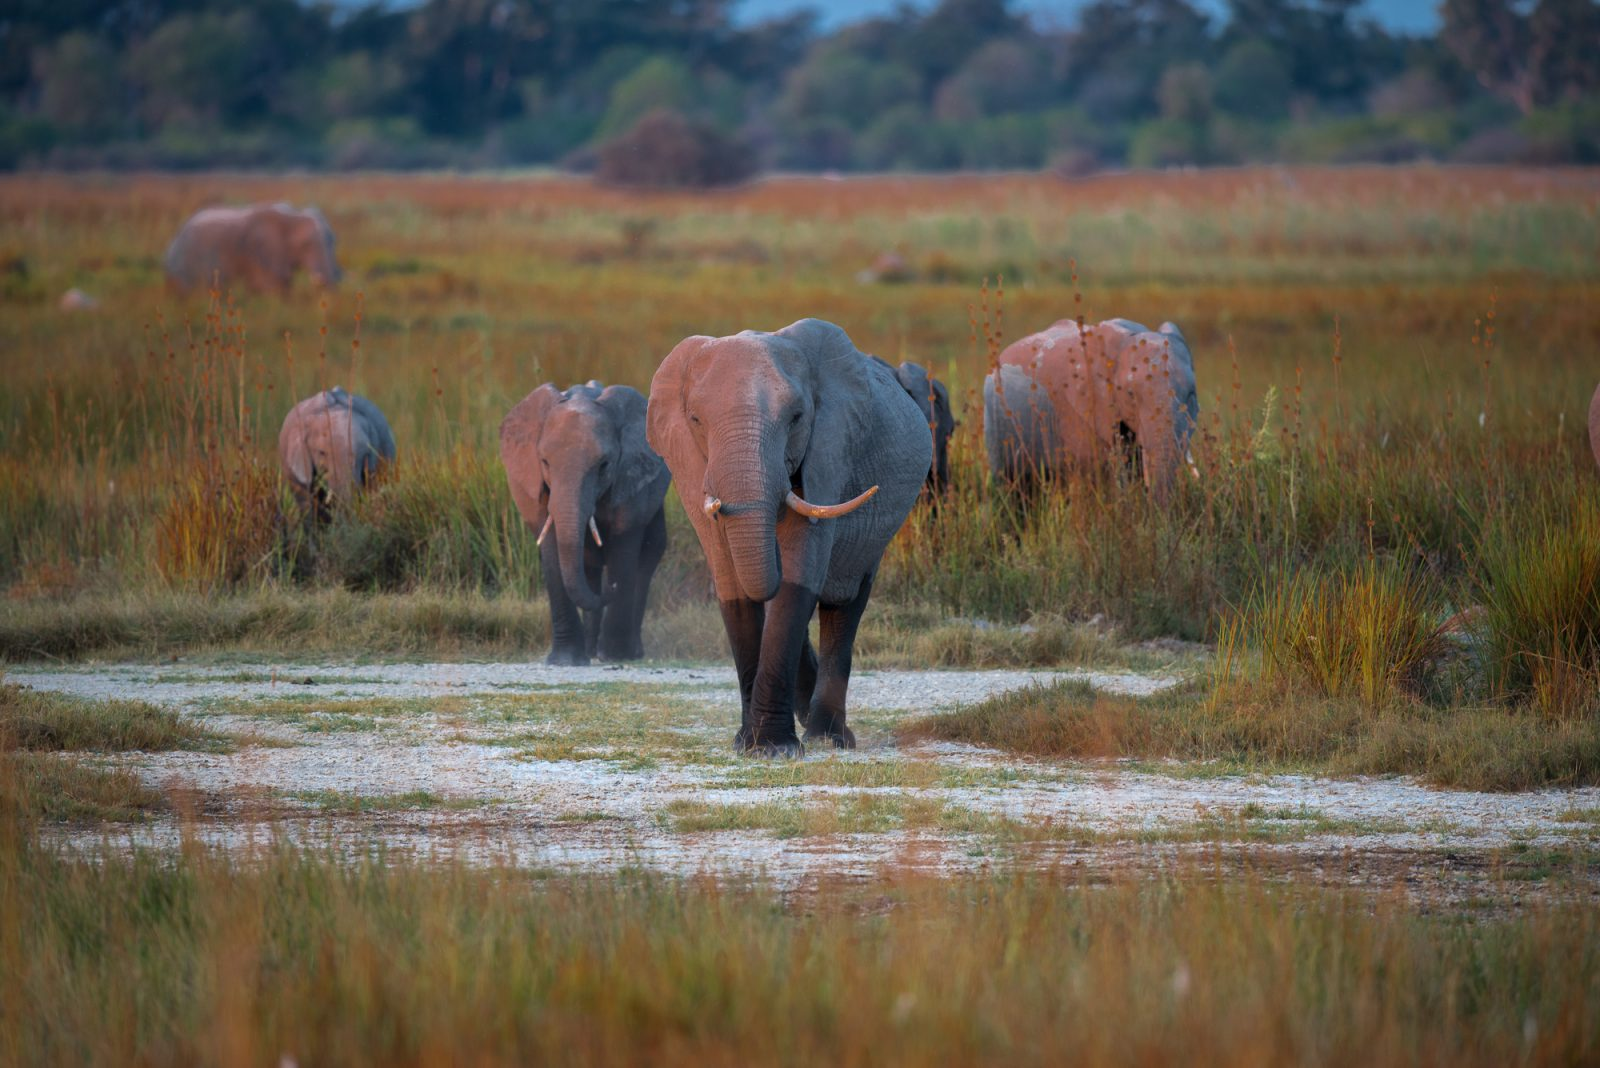 Elephants out of the wetlands